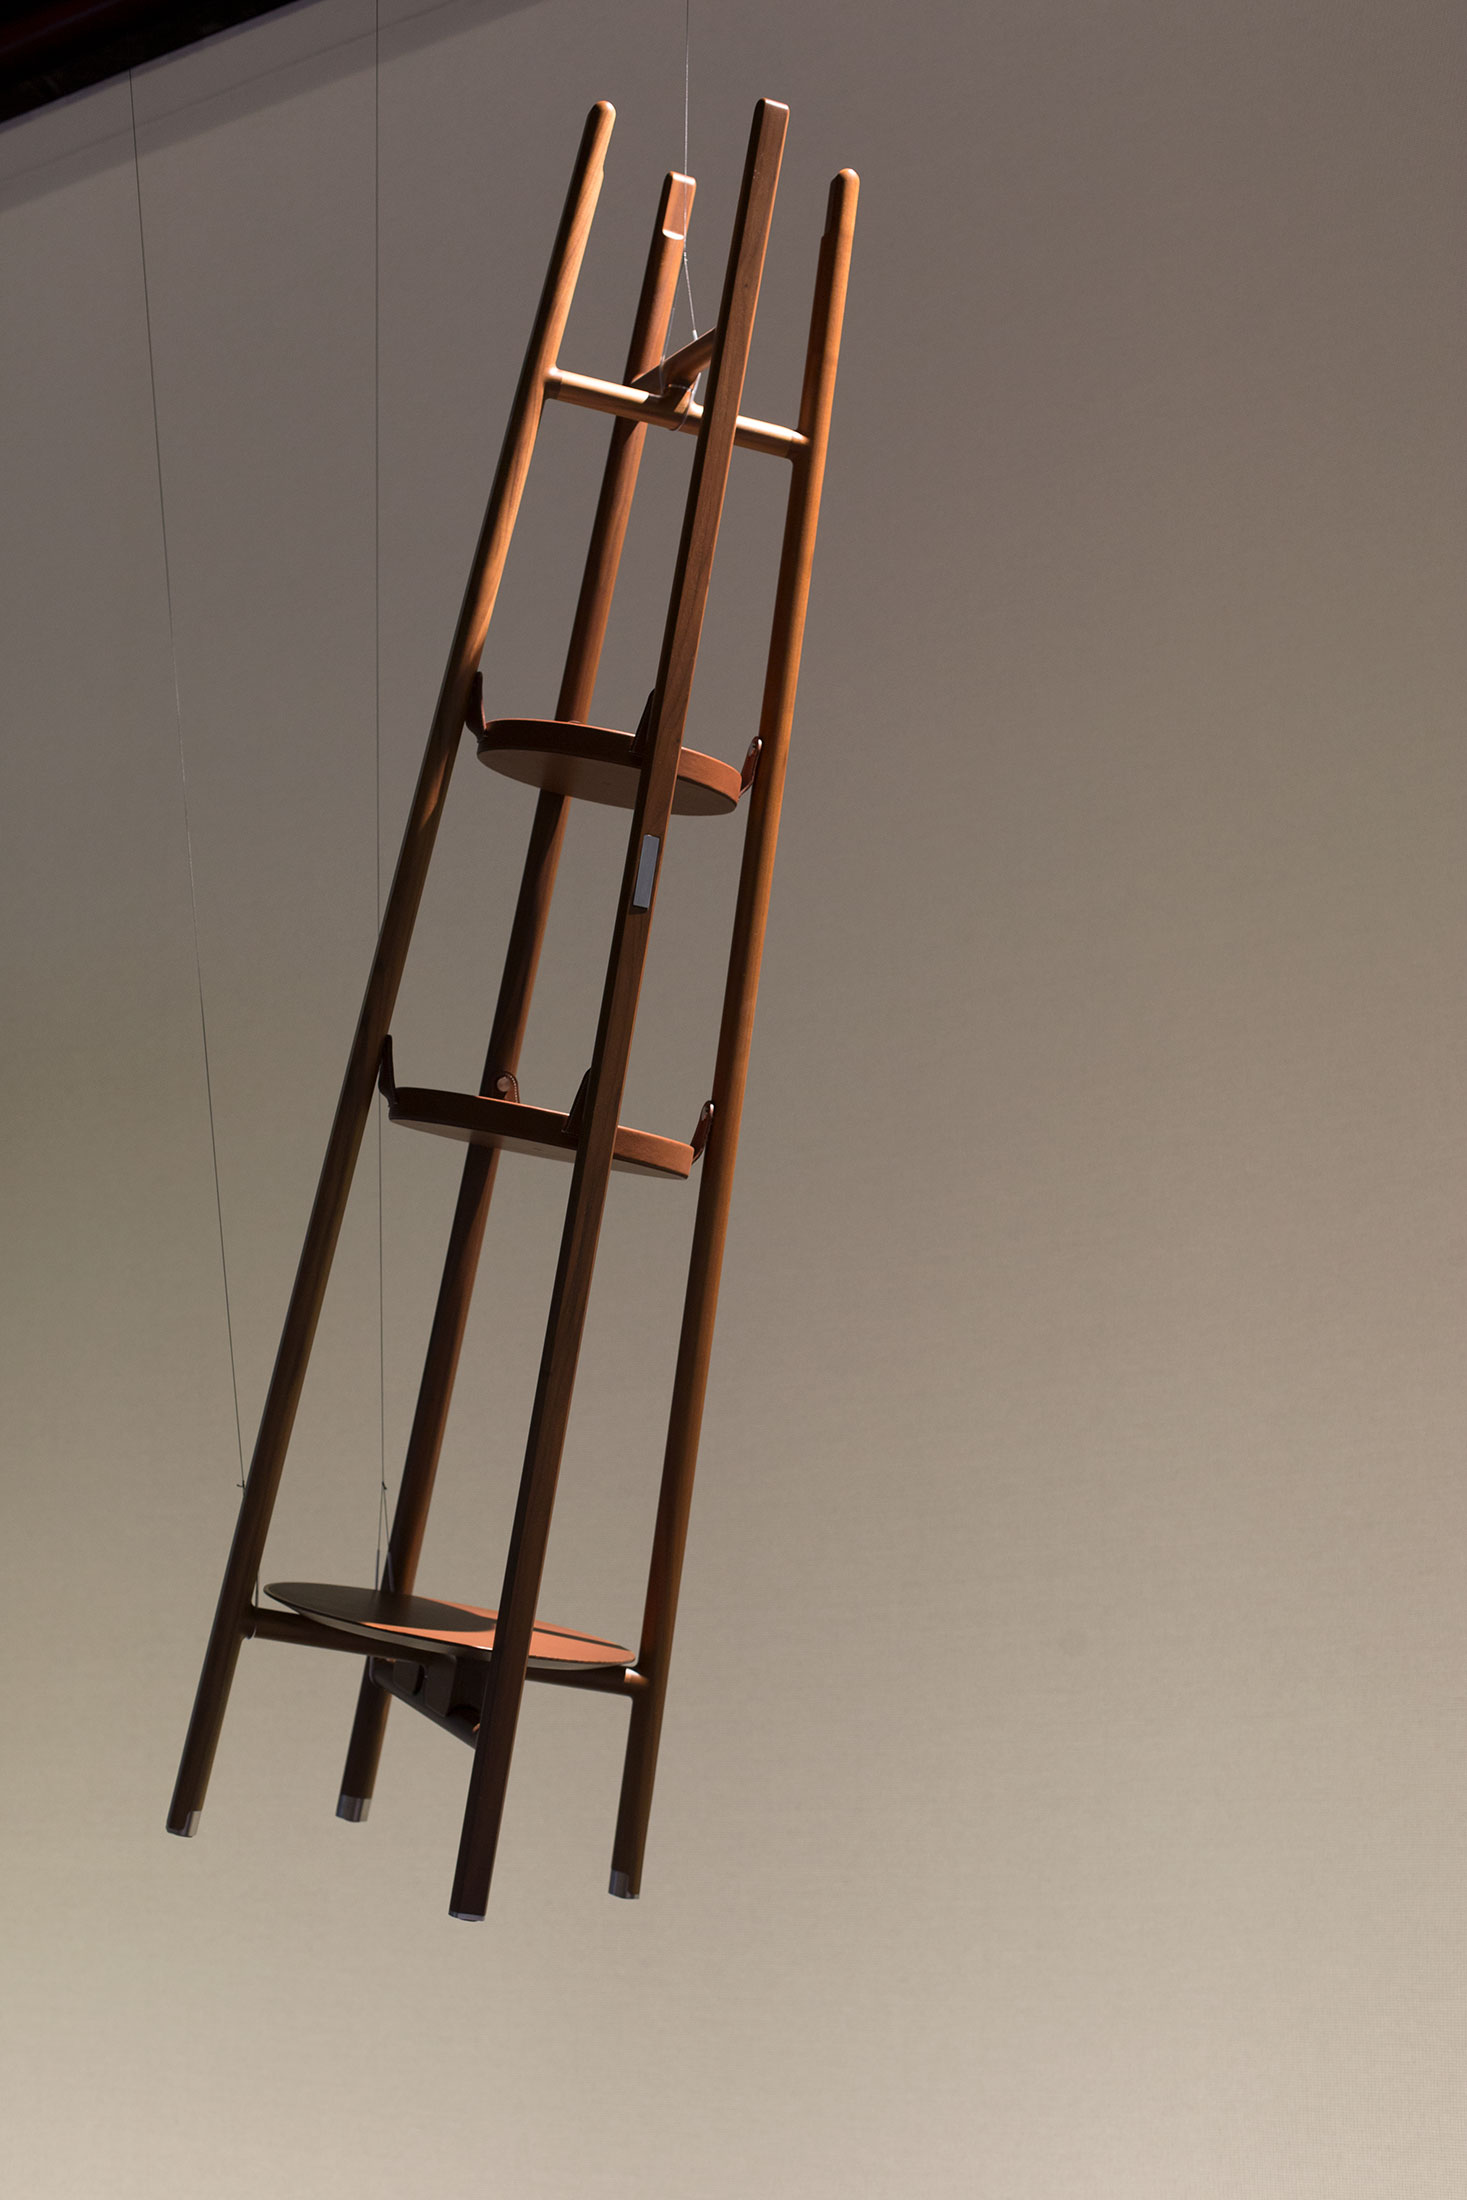 The Vestiare coat rack in Canaletto walnut from Les Nécessaires d'Hermès collection.